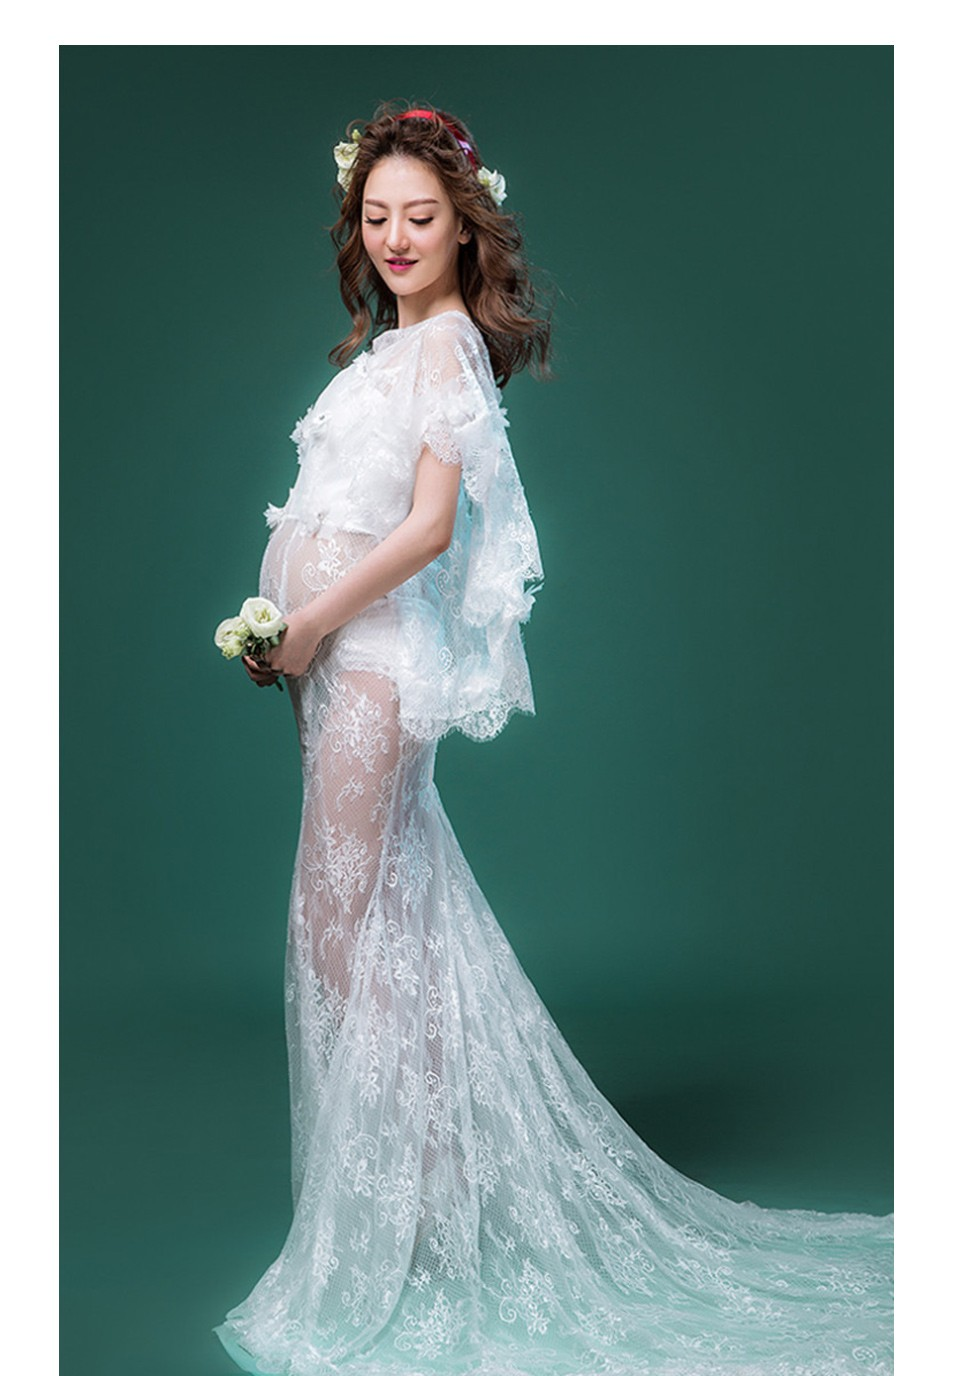 ΞSMDPPWDBB Maternity Photography Props Maternity Dresses Lace White ...